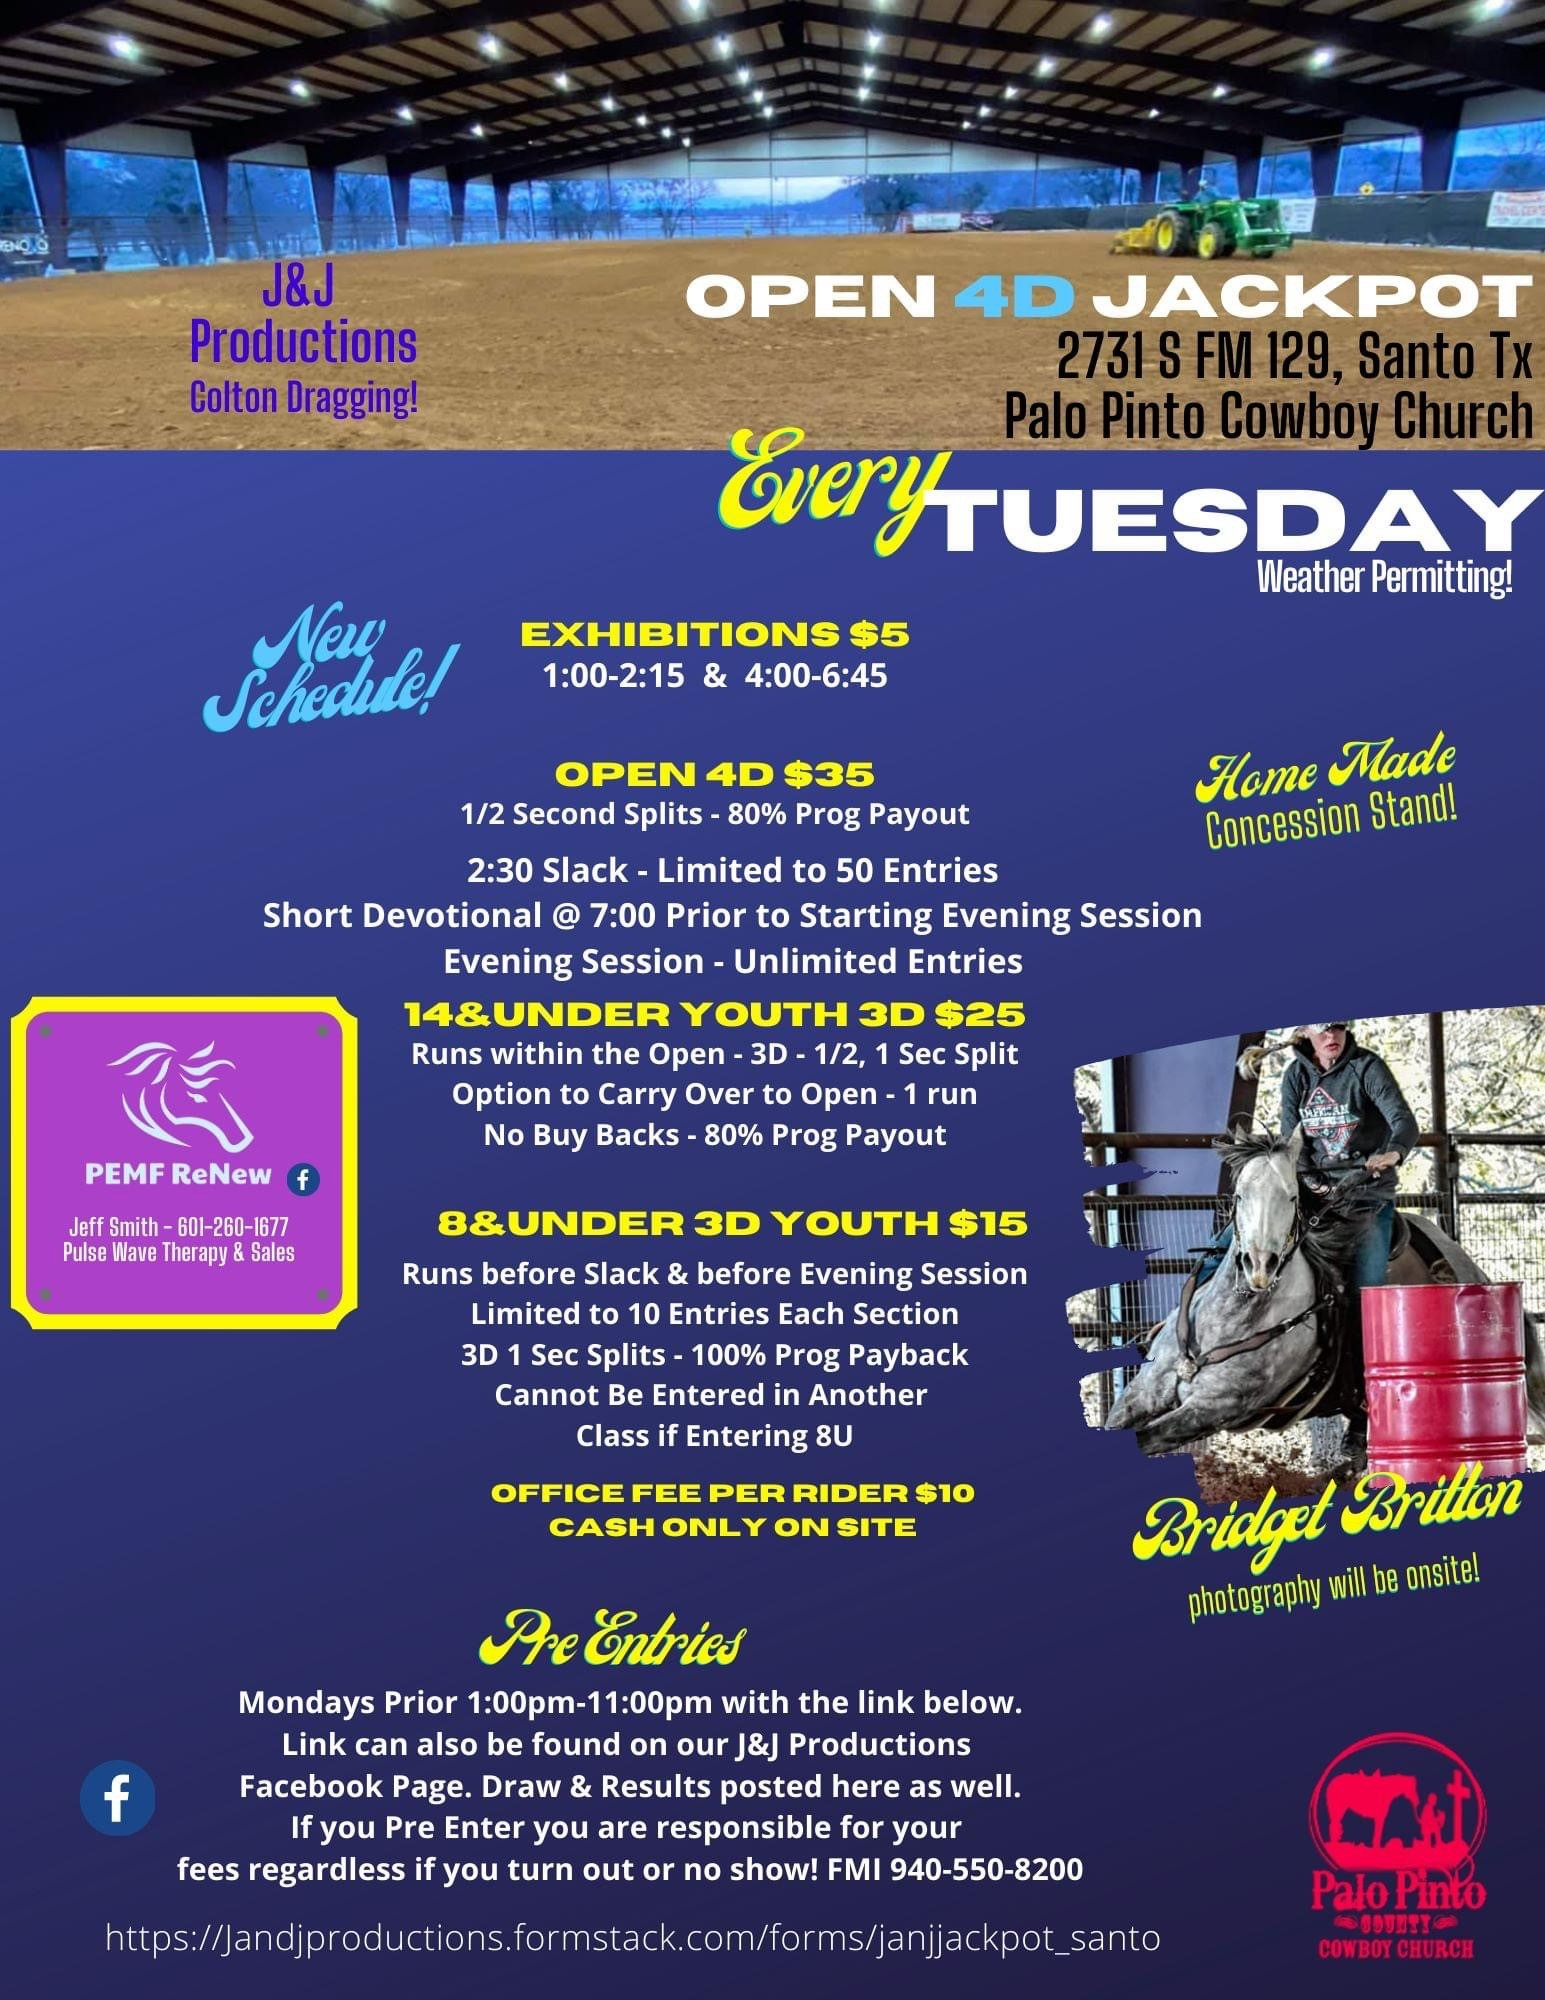 J & J Productions updated the times for the Tuesday night barrel races due to the shadows in the arena,  Our events calendar is updated with this new flyer.